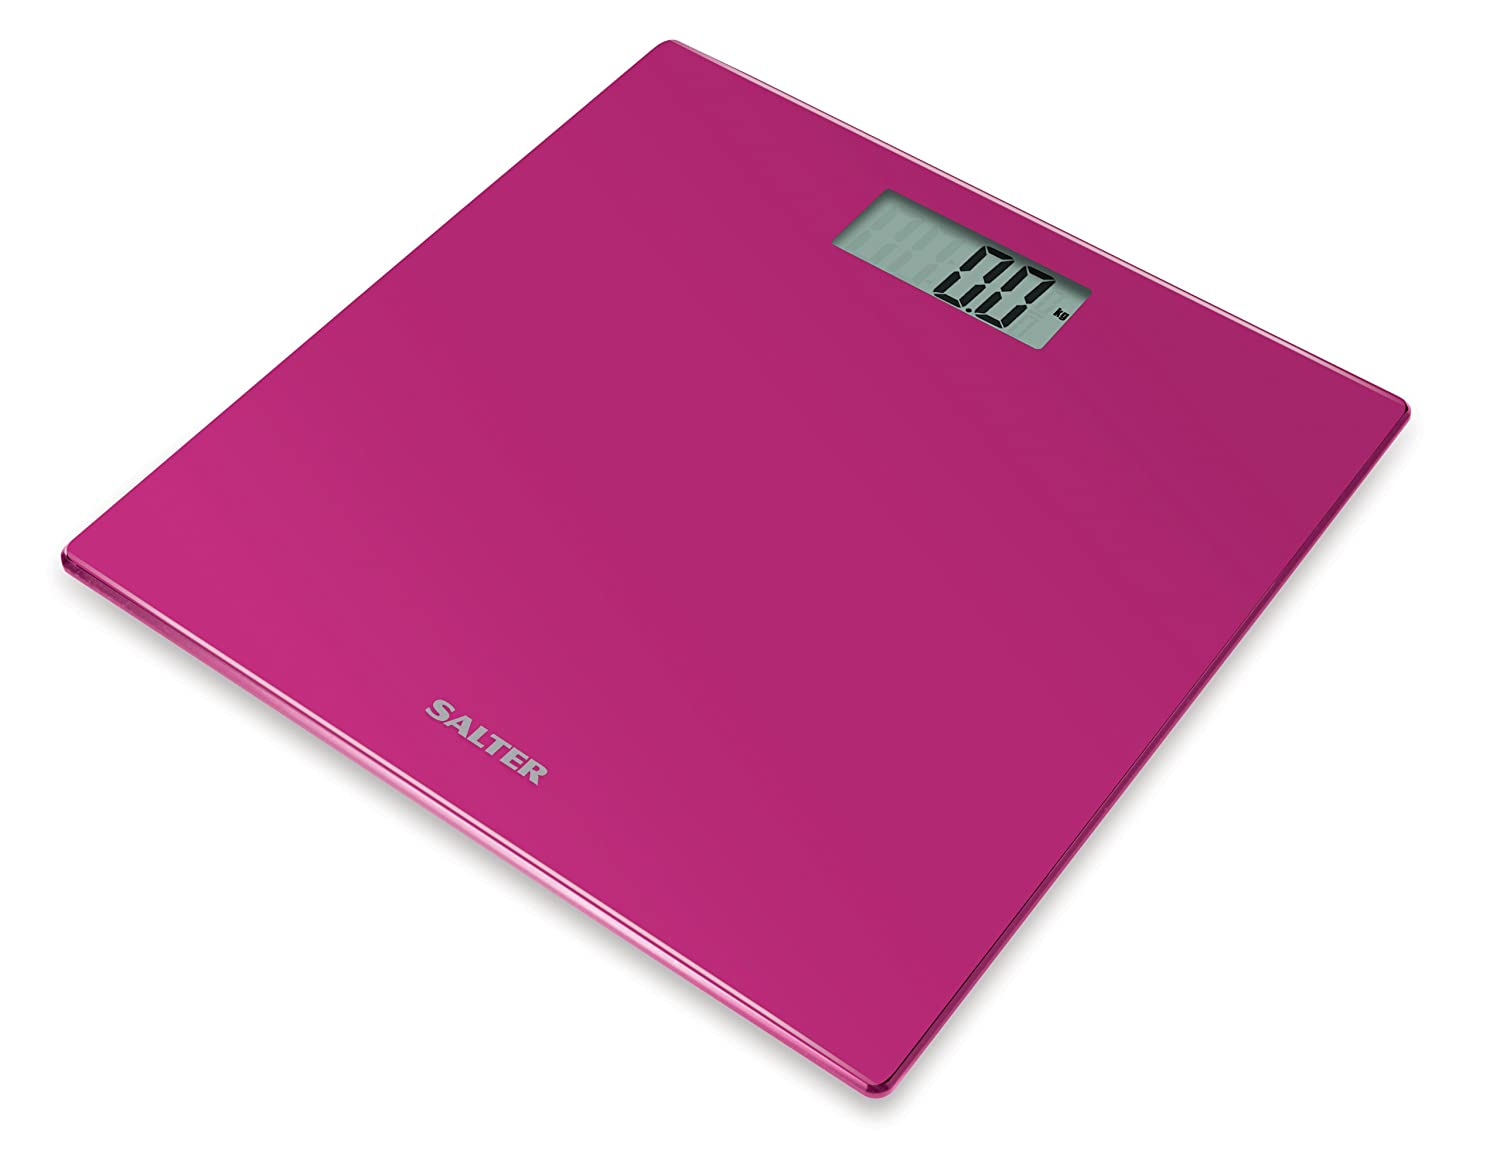 Salter Electronic Bathroom Scales, Toughened Glass Body, Measure Weight Metric / Imperial, Easy to Read Digital Display, Instant Precise Reading with Step-On Feature, 15Yr Guarantee - Union Jack FKA Brands Ltd 9069 UJ3R